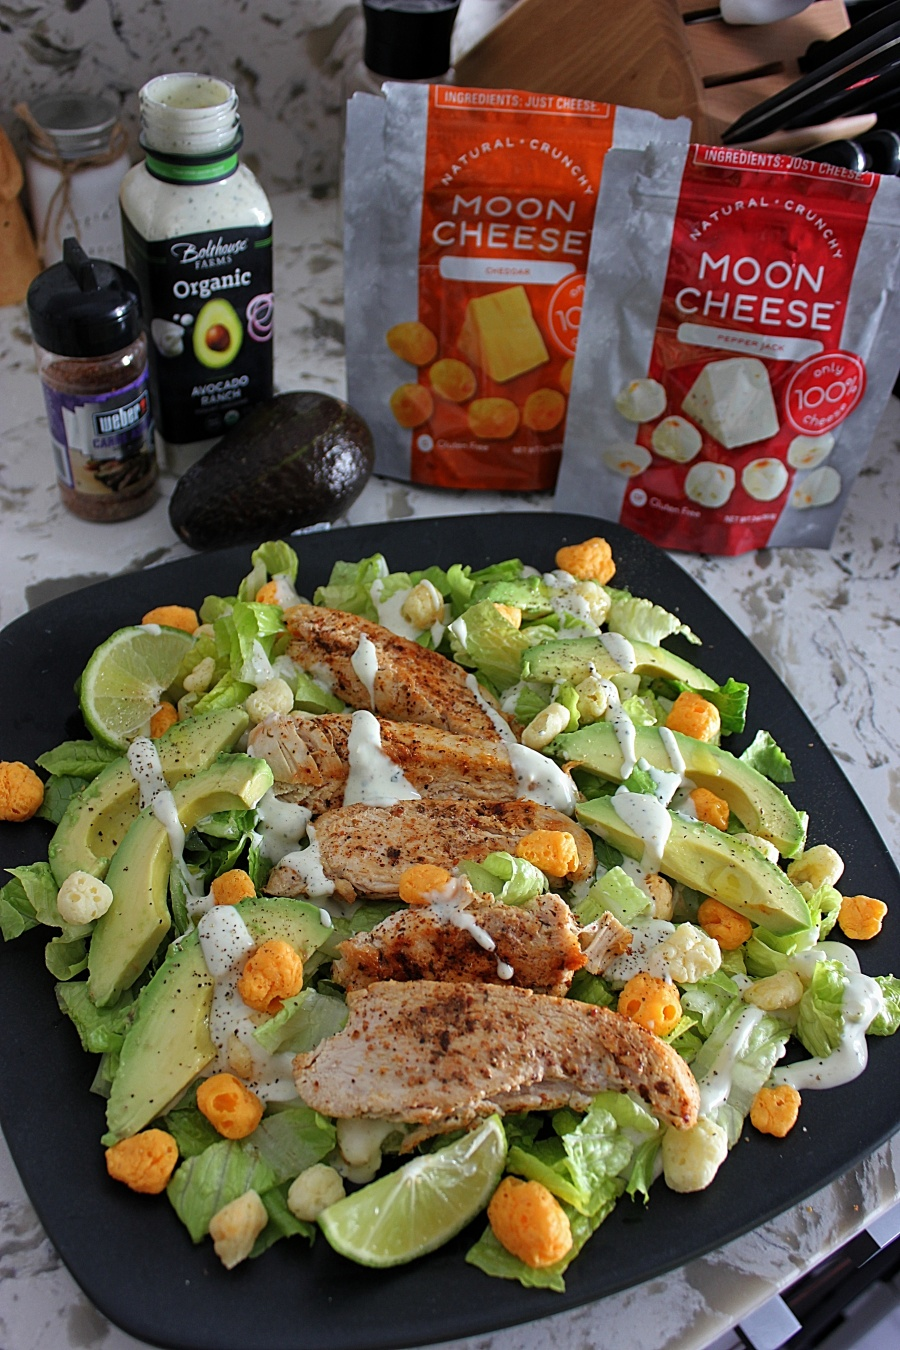 keto salad recipe with moon cheese